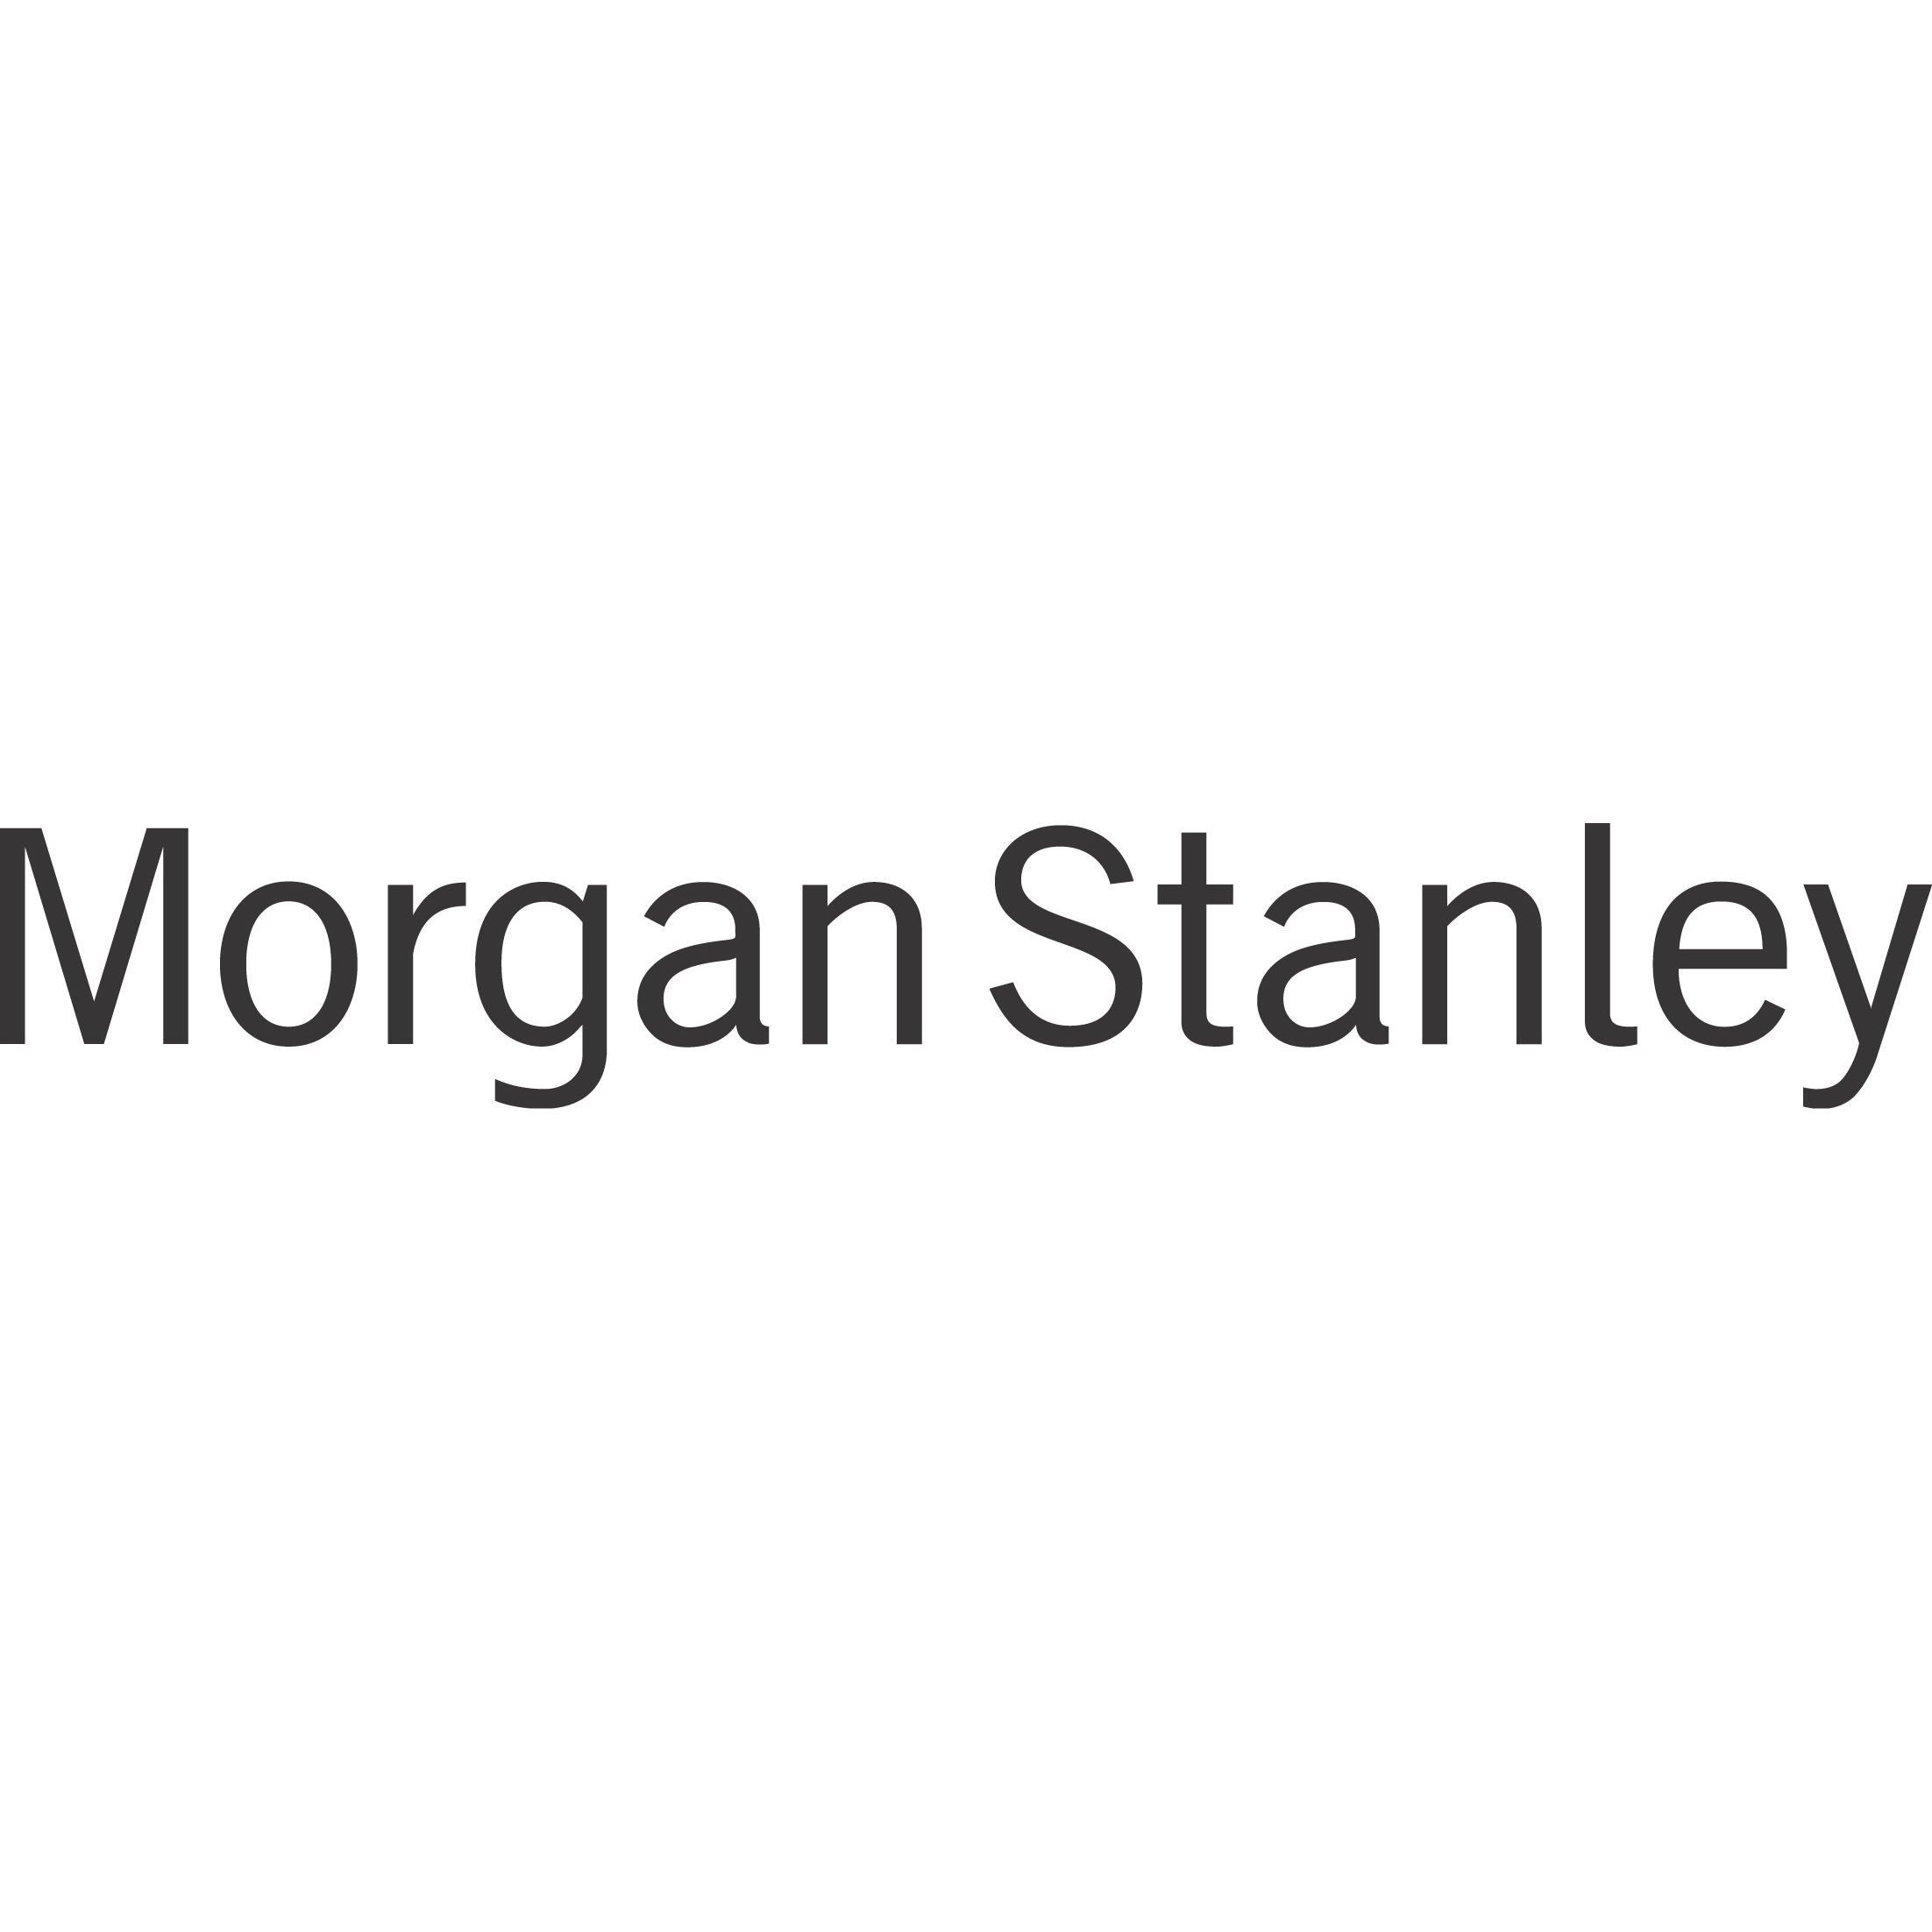 Deborah Denooy - Morgan Stanley | Financial Advisor in Washington,District of Columbia